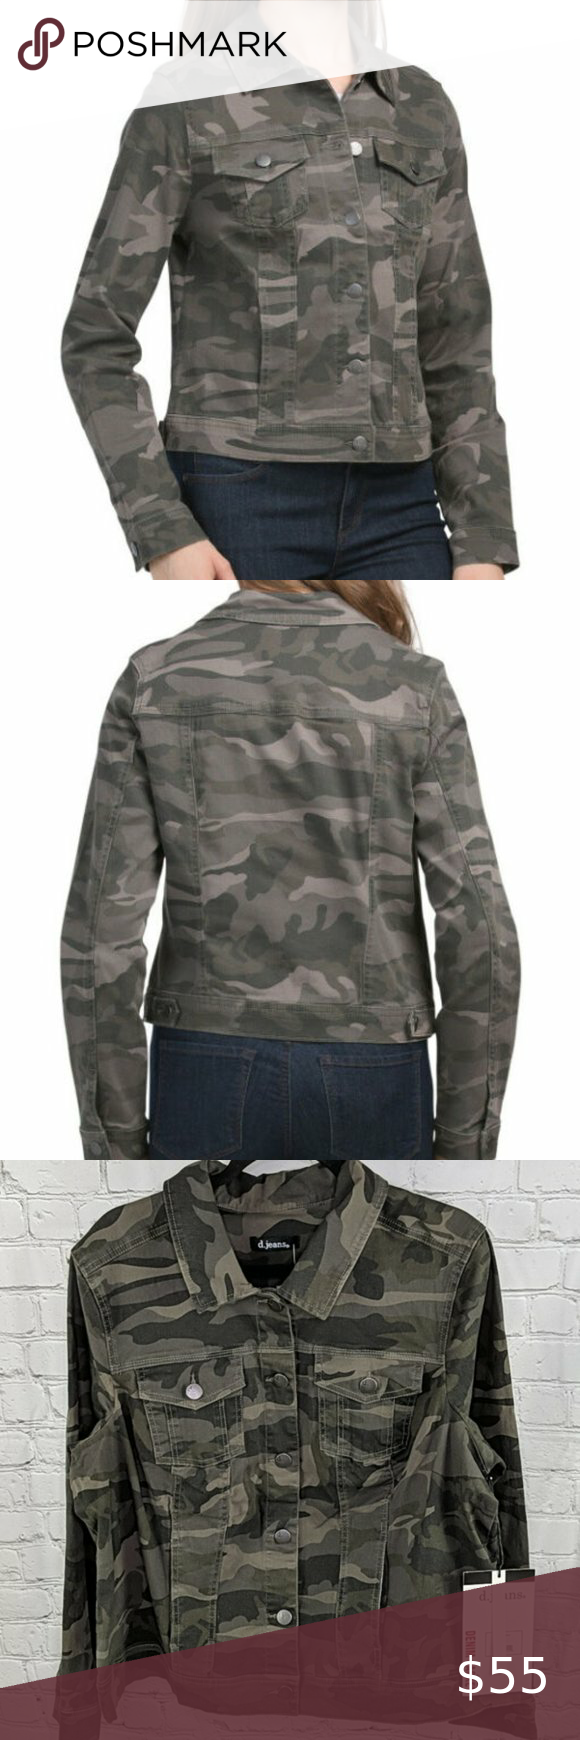 D Jeans Camo Print Jean Jacket M Gifts For Her Camo Print Jeans Printed Jeans Leopard Print Jeans [ 1740 x 580 Pixel ]